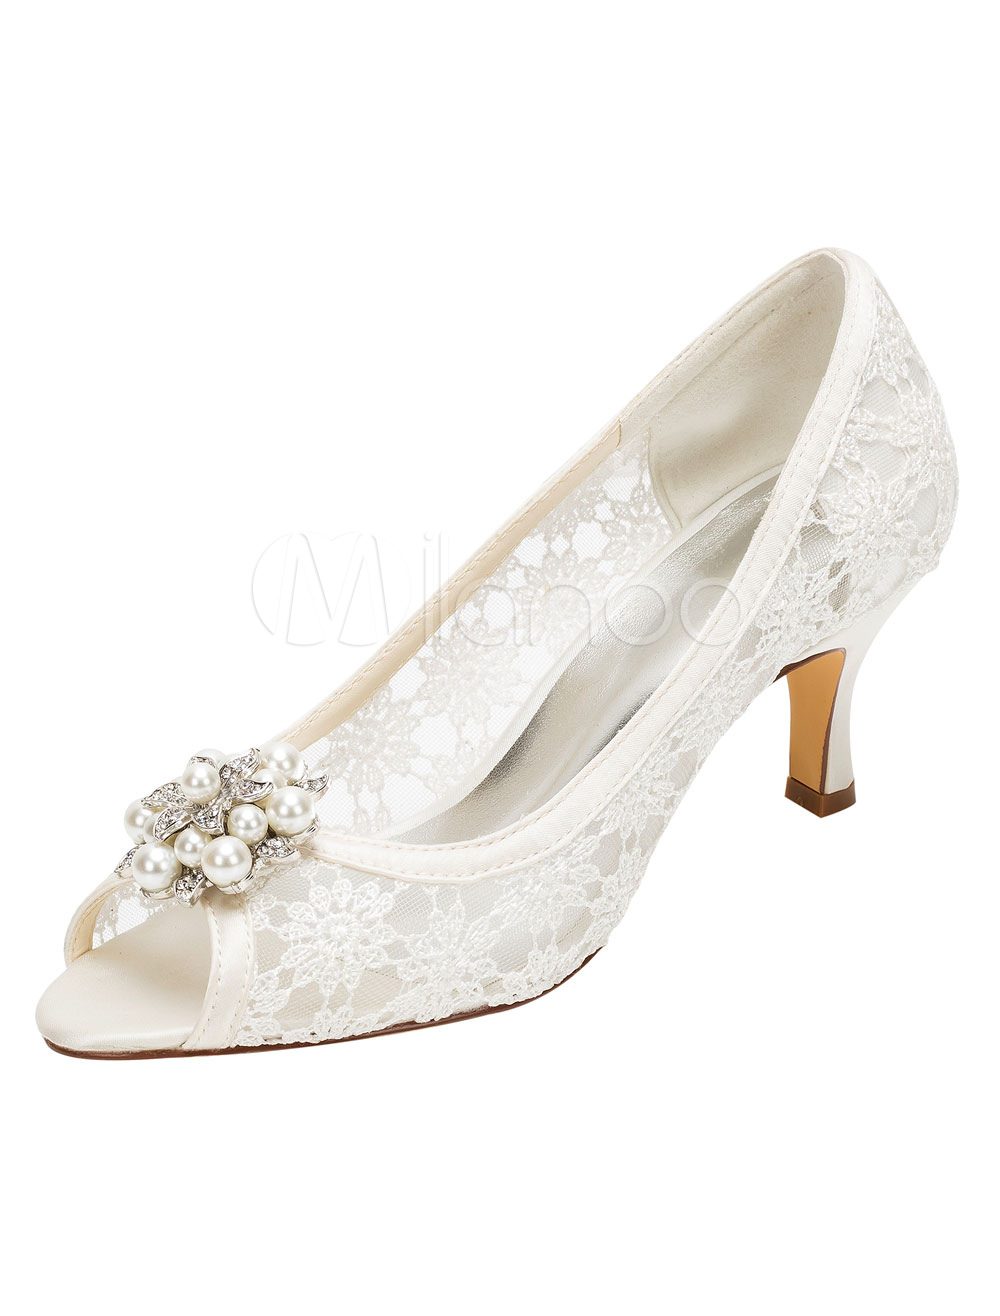 Buy Lace Wedding Shoes High Heel Ivory Peep Pumps Pearl Rhinestone Slip-on Bridal Shoes for $57.59 in Milanoo store